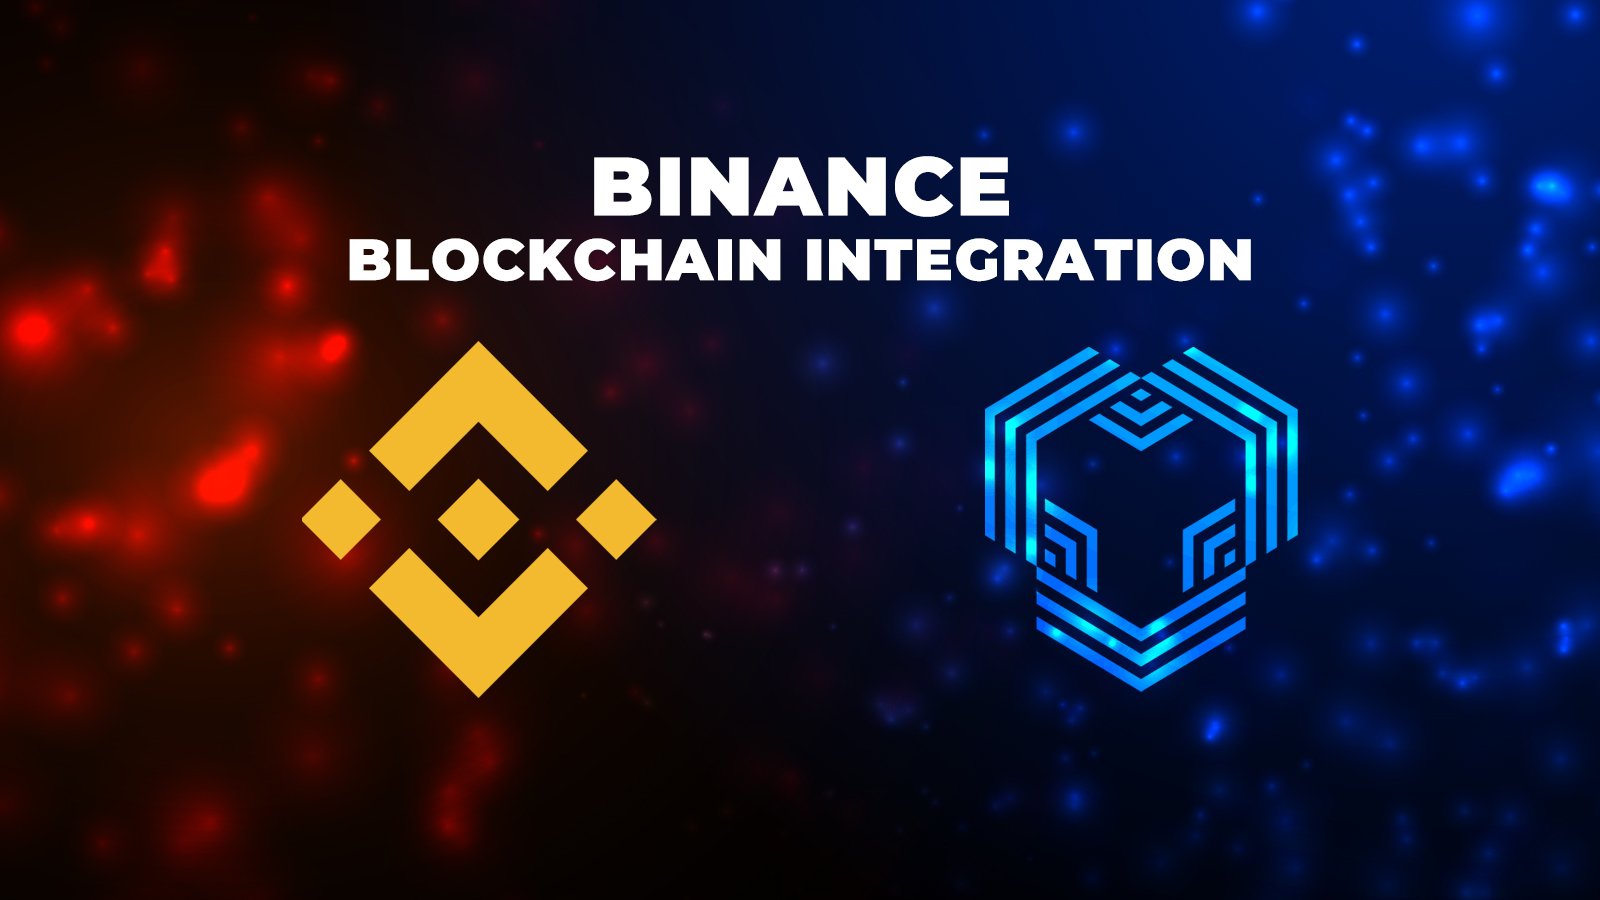 Binance and Youhodler logos appear together